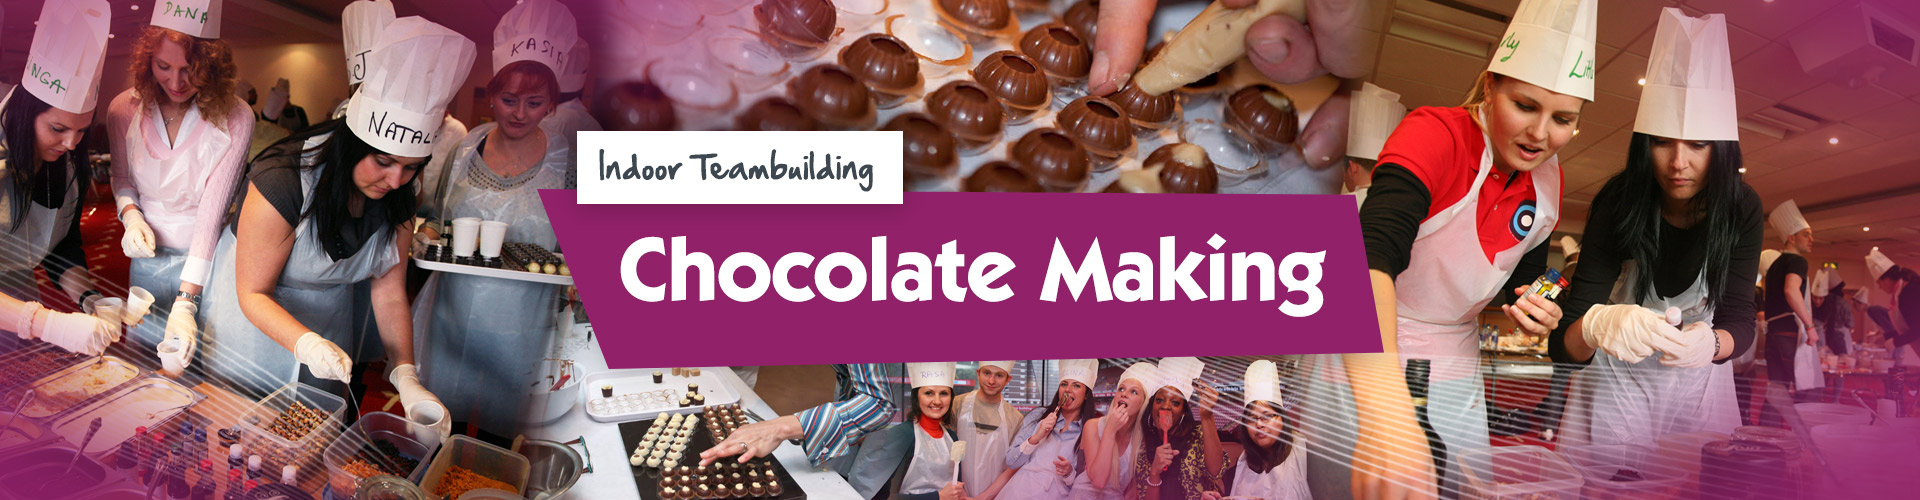 Teambuilding | Chocolate Making